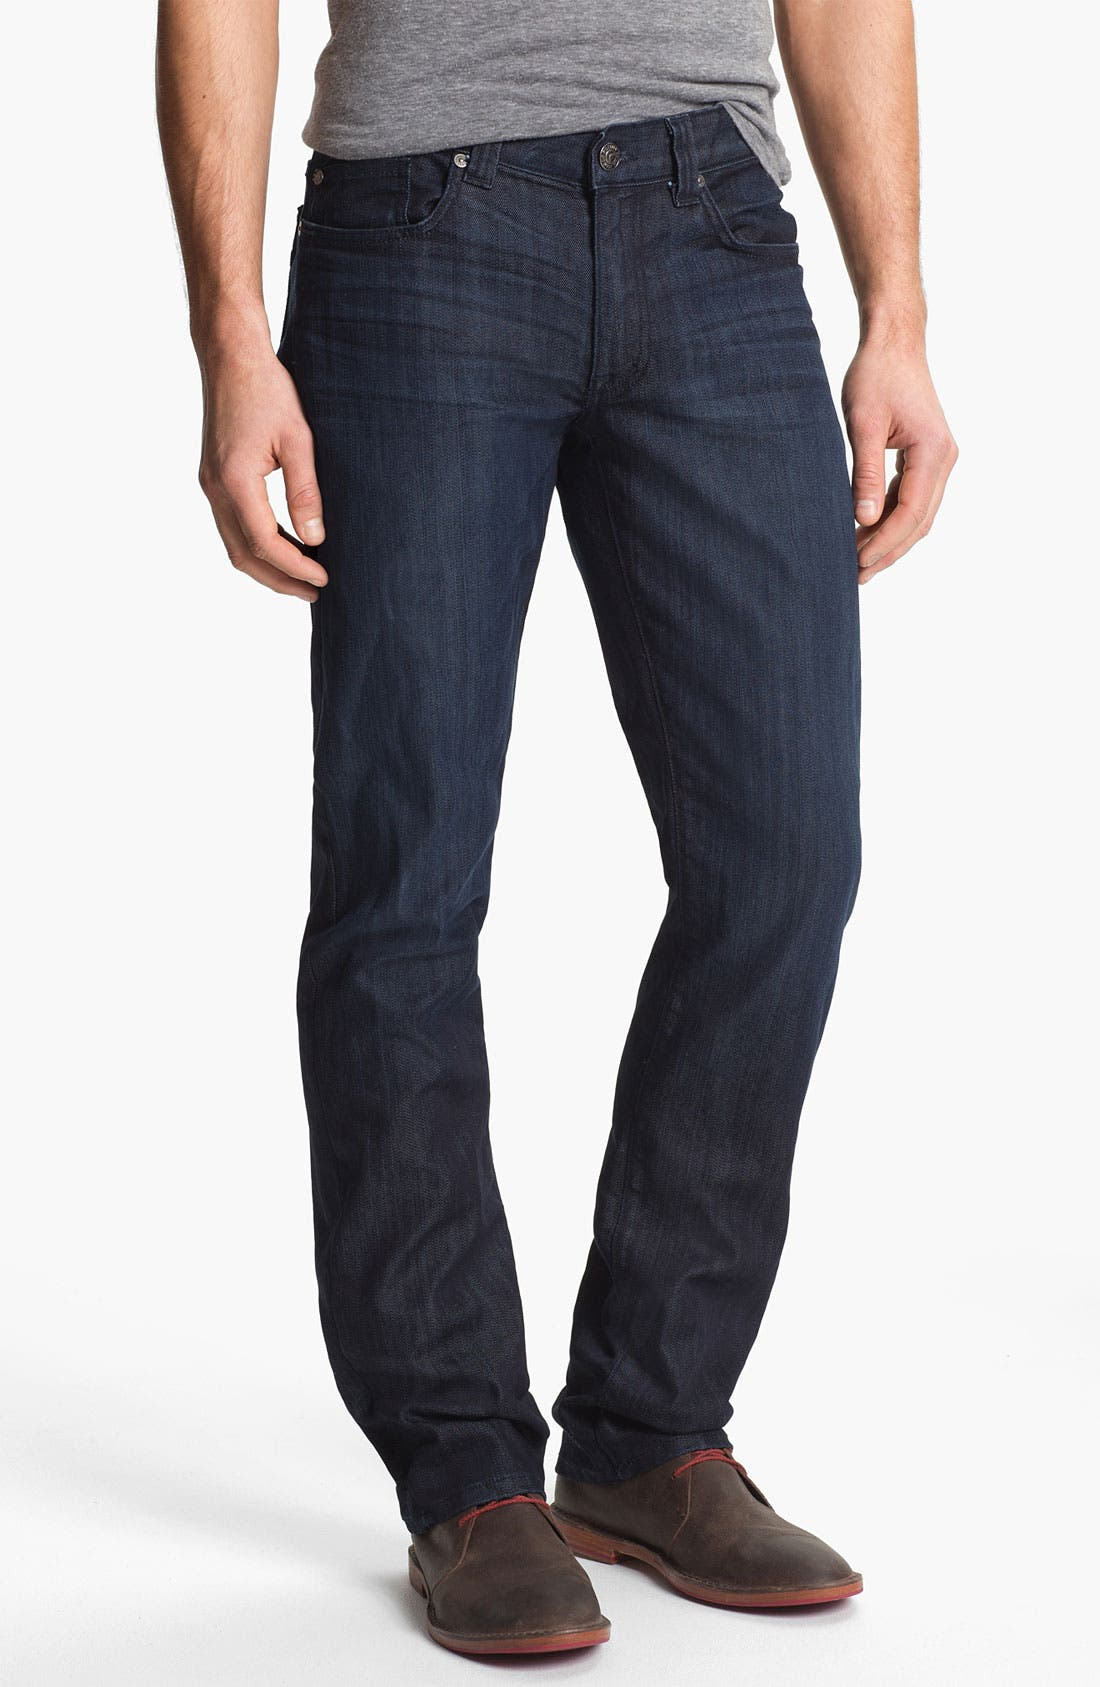 Alternate Image 1 Selected - Fidelity Denim 'Impala' Straight Leg Jeans (Varsity Dark)